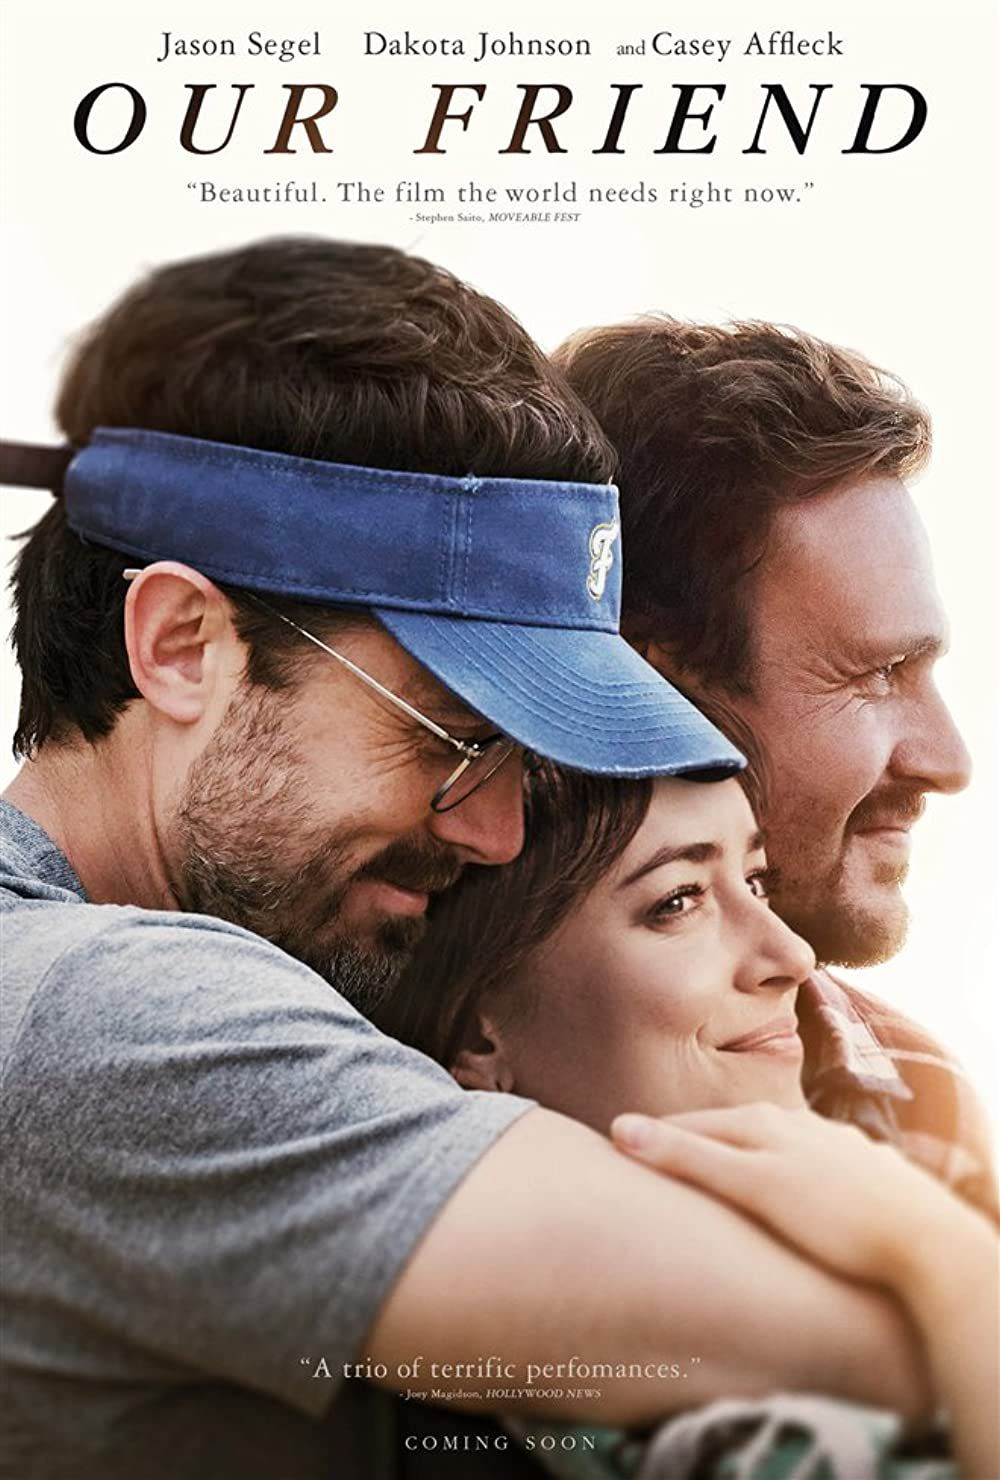 Our Friend - Film (2021) streaming VF gratuit complet